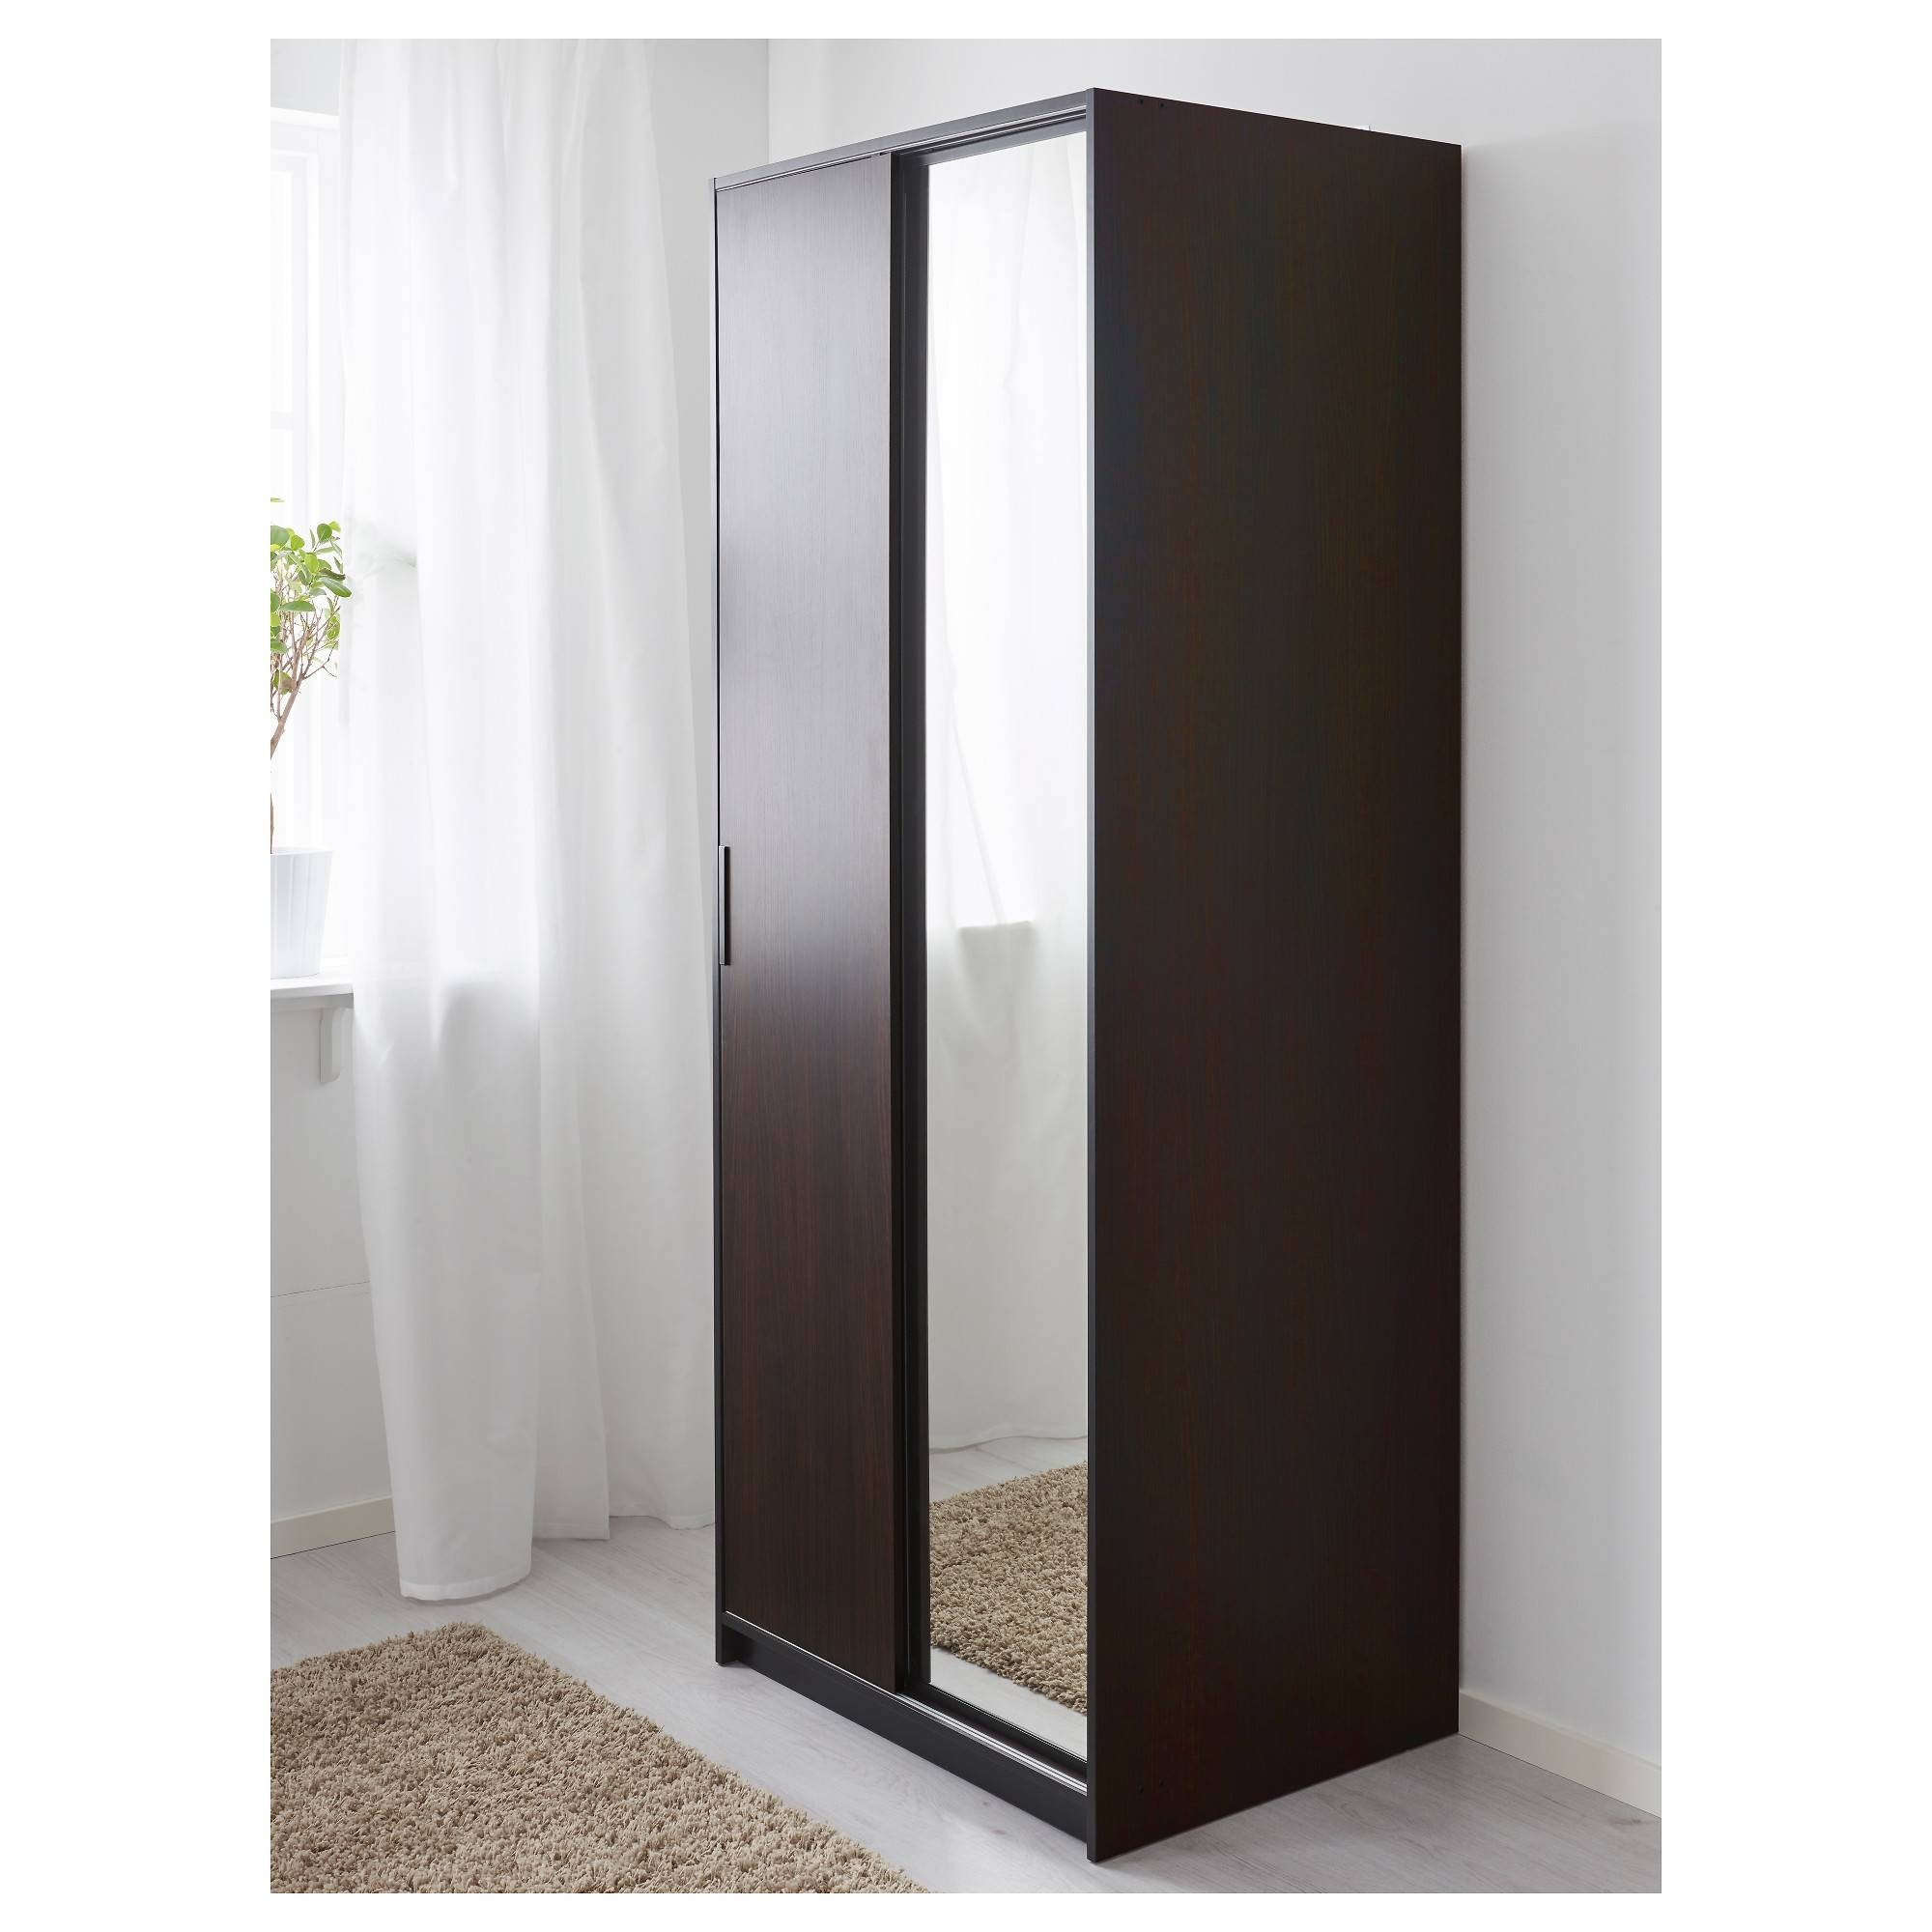 Trysil Wardrobe Dark Brown/mirror Glass 79X61X202 Cm - Ikea within Dark Wood Wardrobe With Mirror (Image 25 of 30)